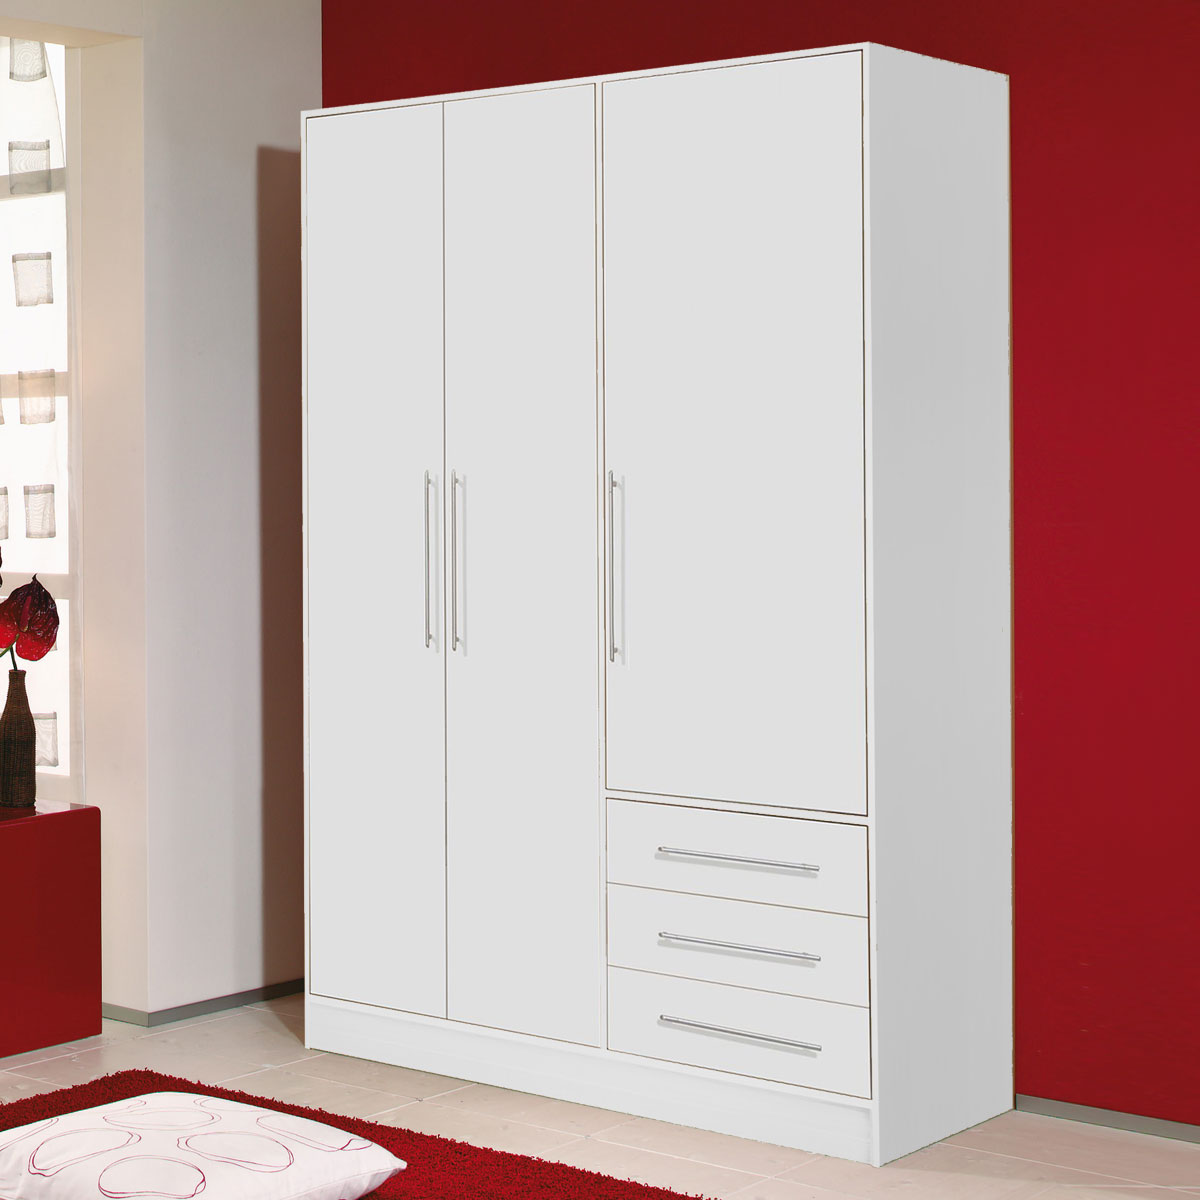 kleiderschrank jupiter 3 t riger schlafzimmerschrank in wei 144 6 cm breit. Black Bedroom Furniture Sets. Home Design Ideas